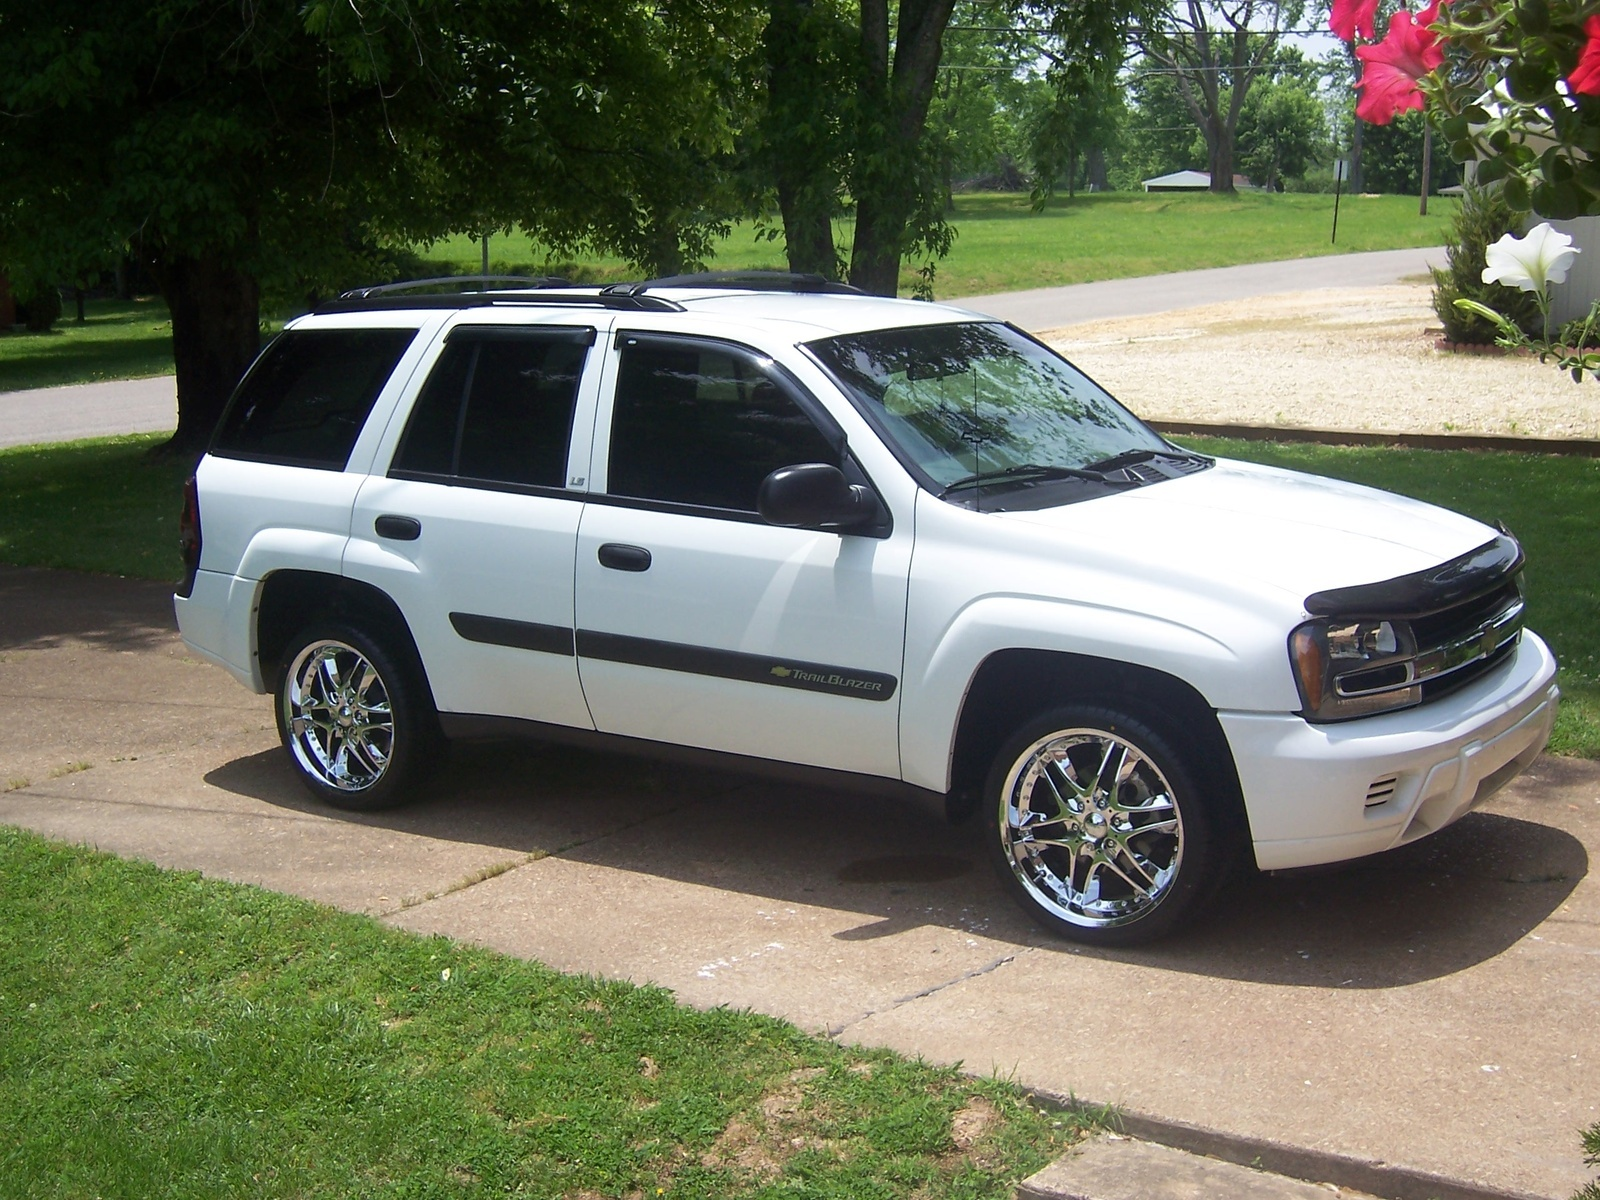 2003 chevrolet trailblazer overview cargurus. Black Bedroom Furniture Sets. Home Design Ideas